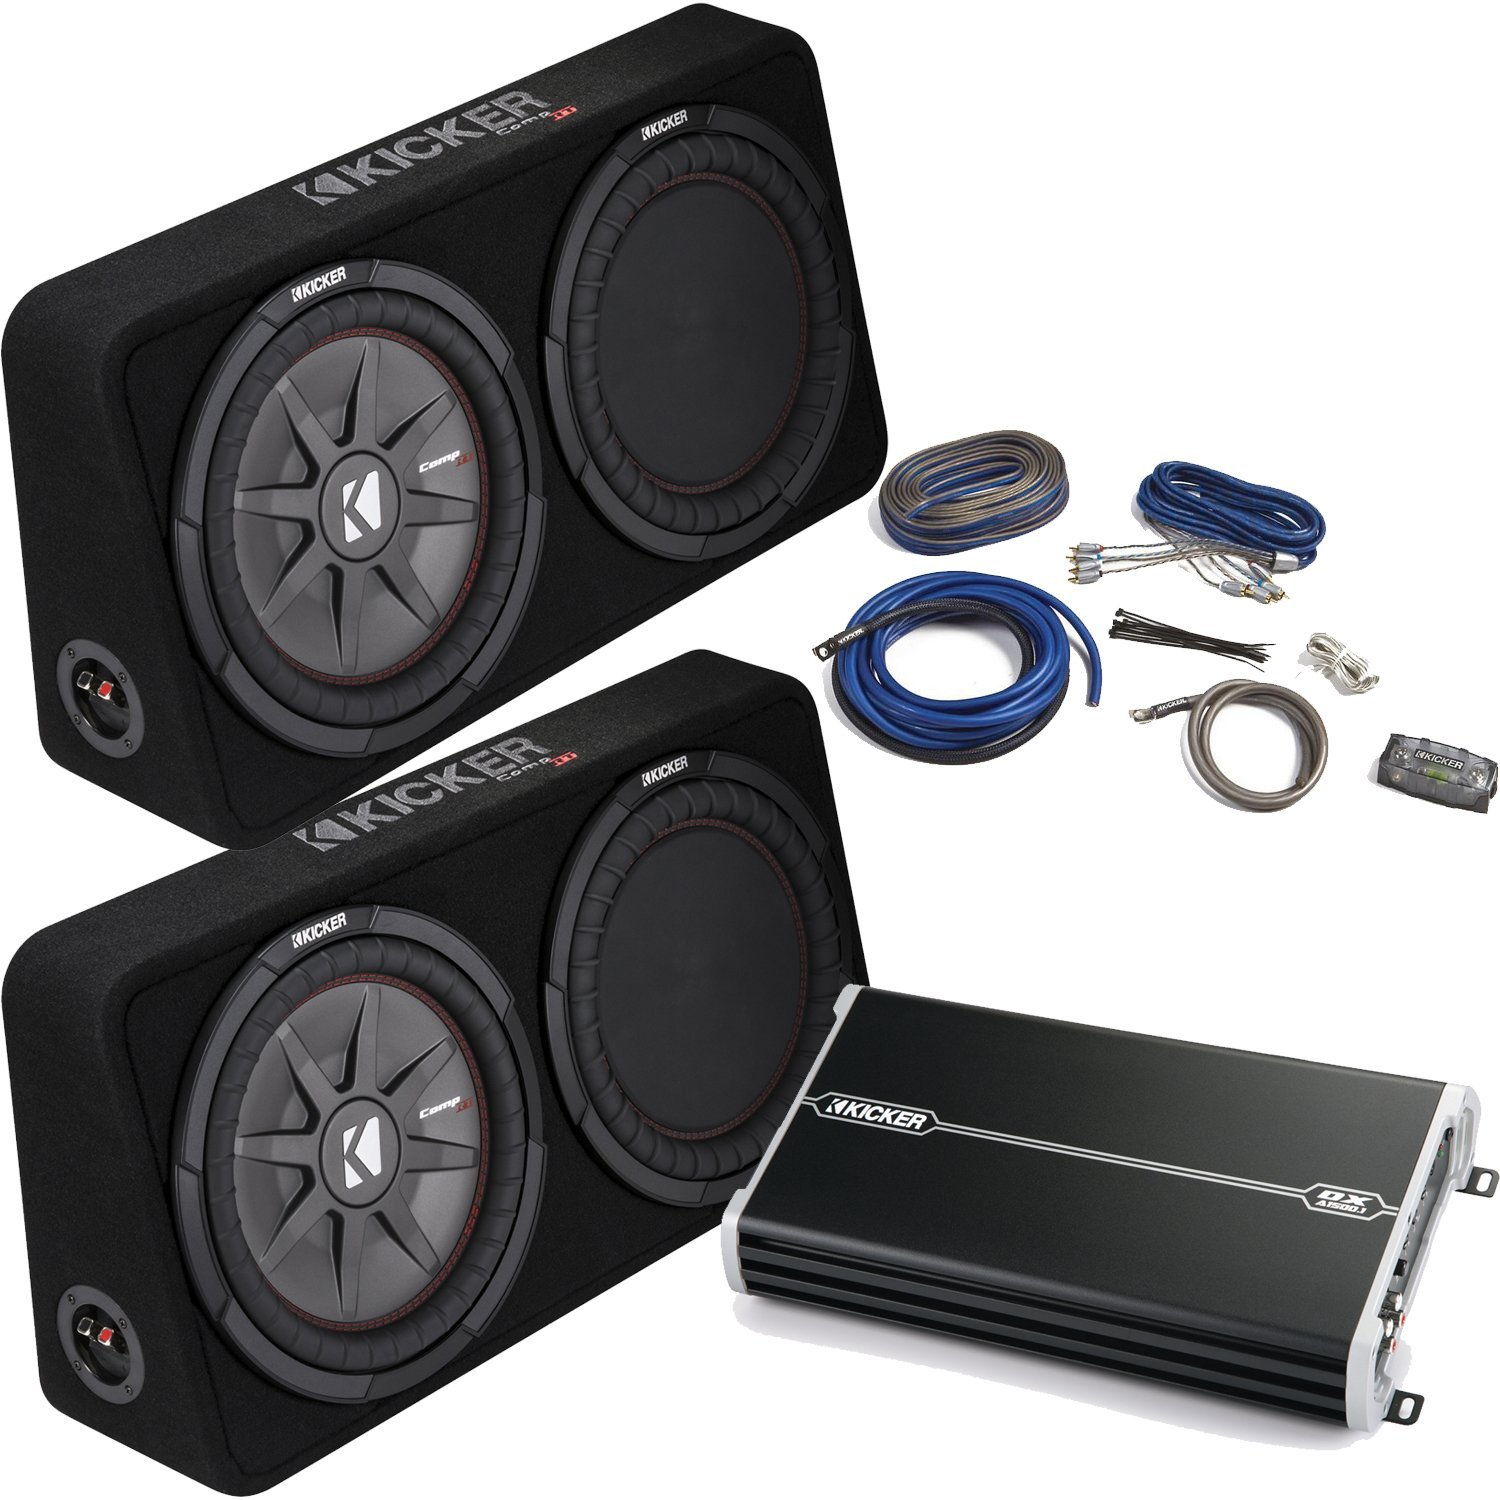 Cheap 4 Awg Amp Wiring Kit Find Deals On Line Kicker Get Quotations Bass Package Two 43tcwrt124 12 Thin Loaded Subwoofer W Radiators Dxa